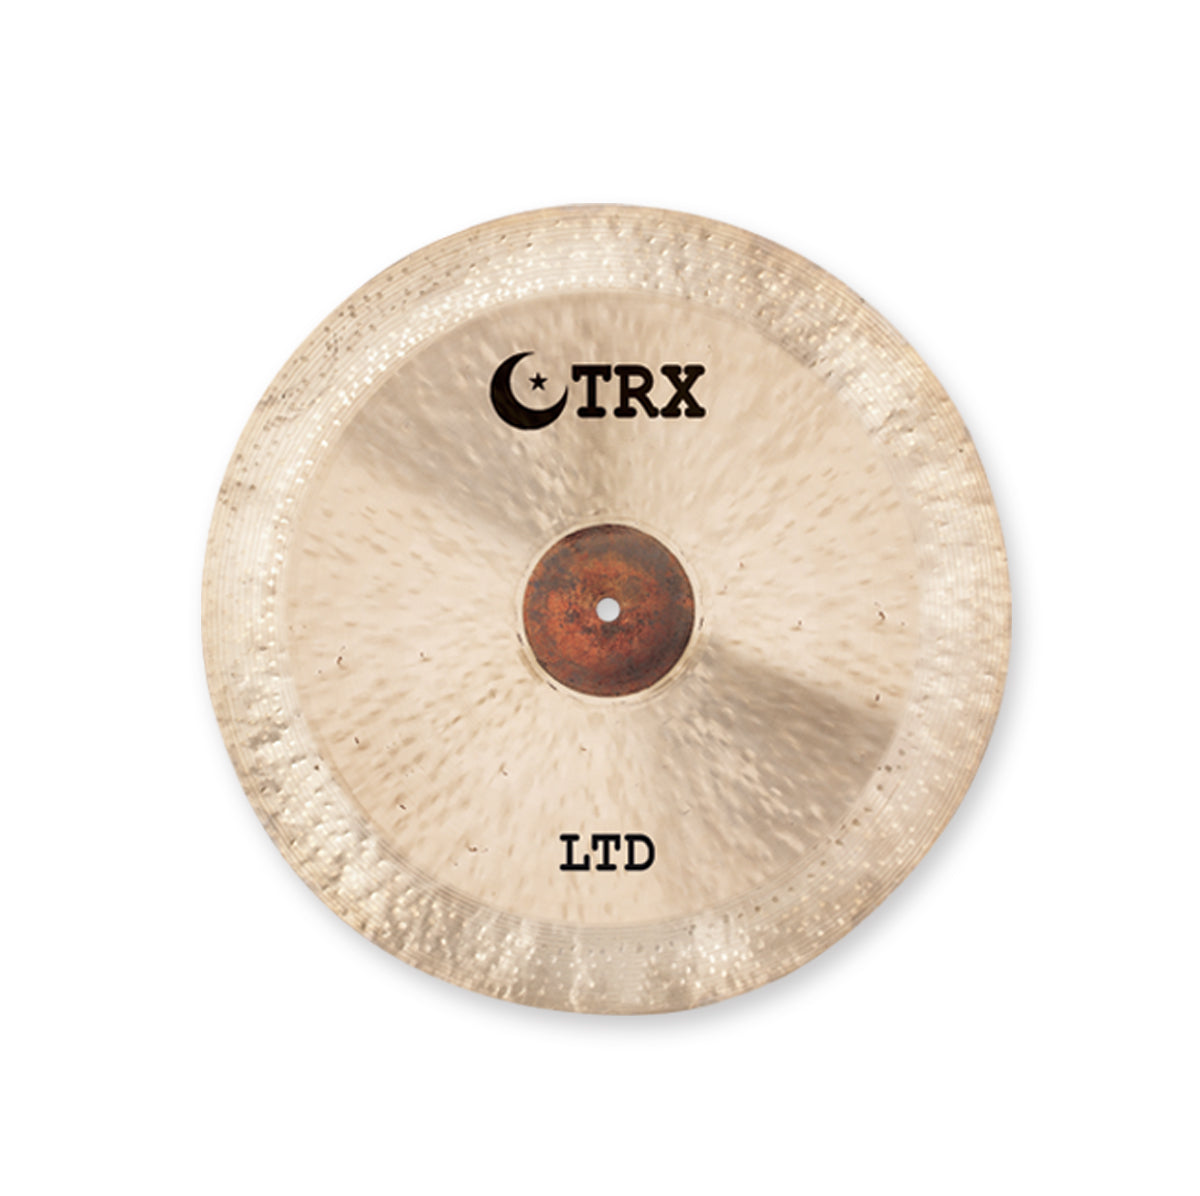 TRX Cymbals LTD Series China